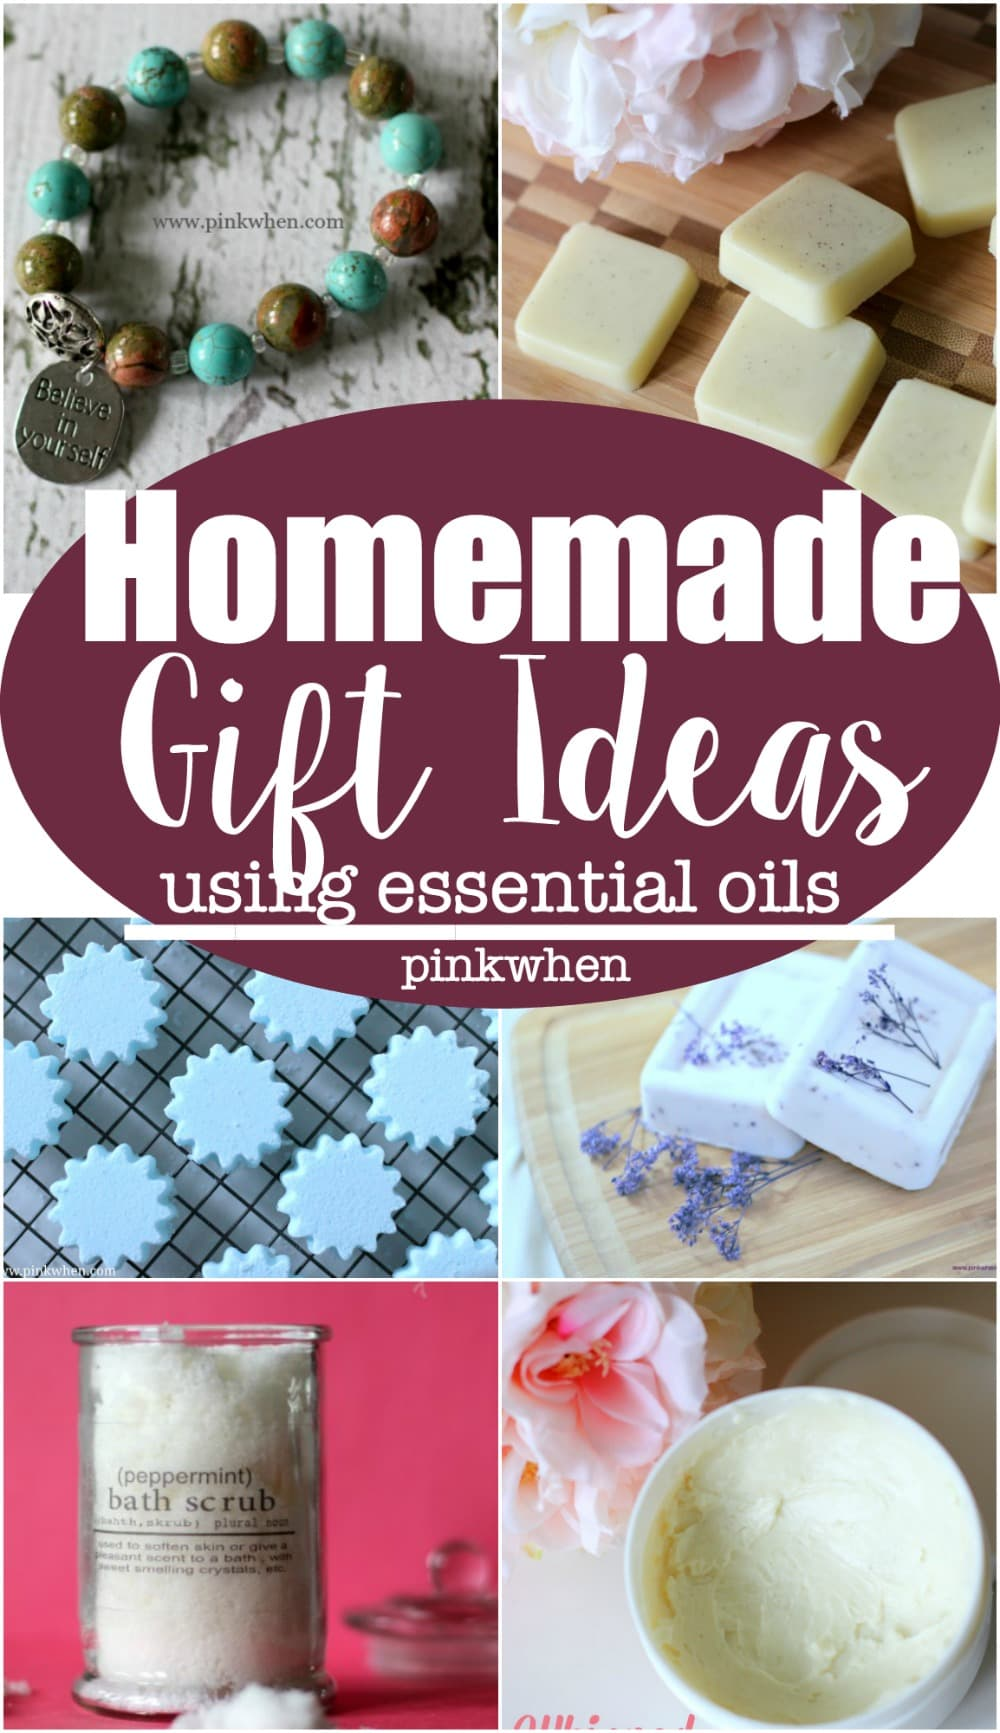 Homemade gift ideas using essential oils pinkwhen homemade gift ideas if you are thinking of getting essential oils or are new to negle Images